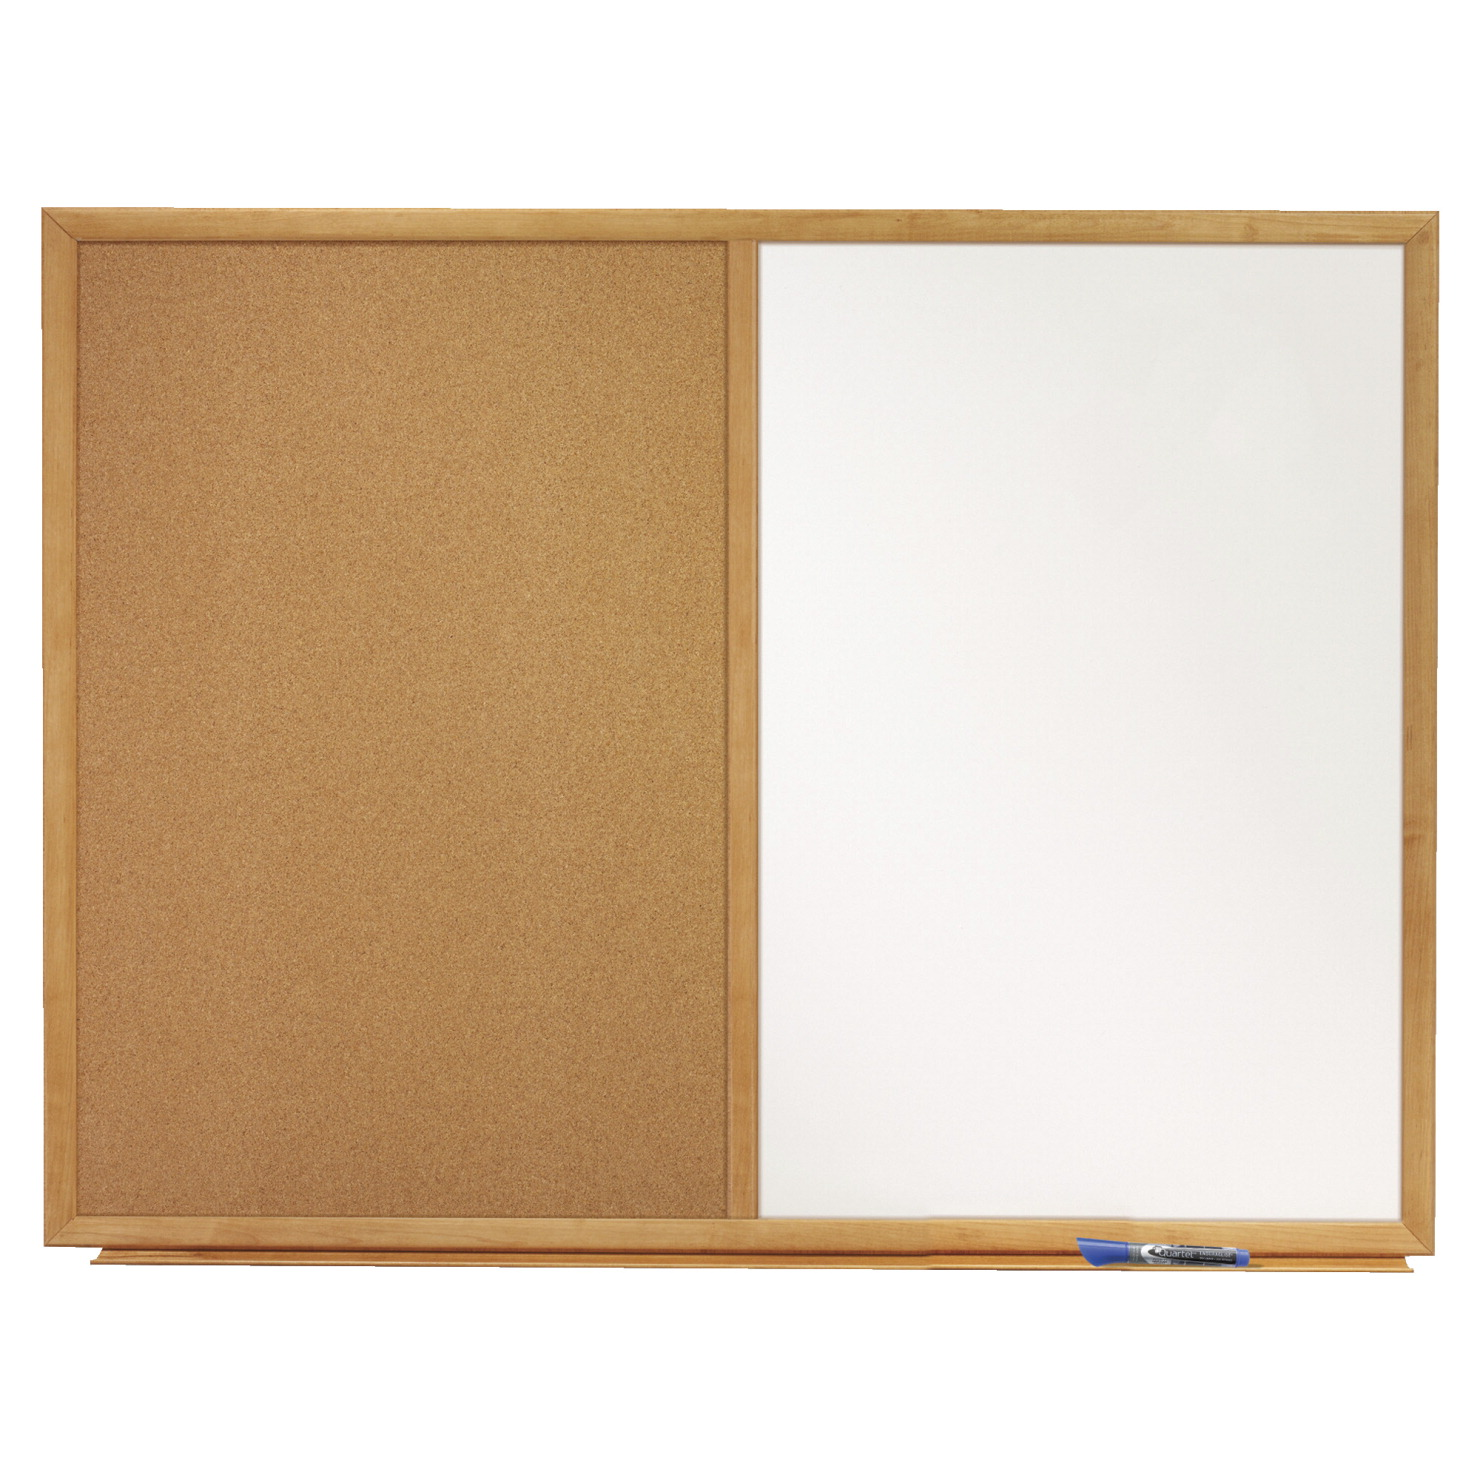 Cork Bulletin Board Cork Board And Dry Erase Board Soar Life Products